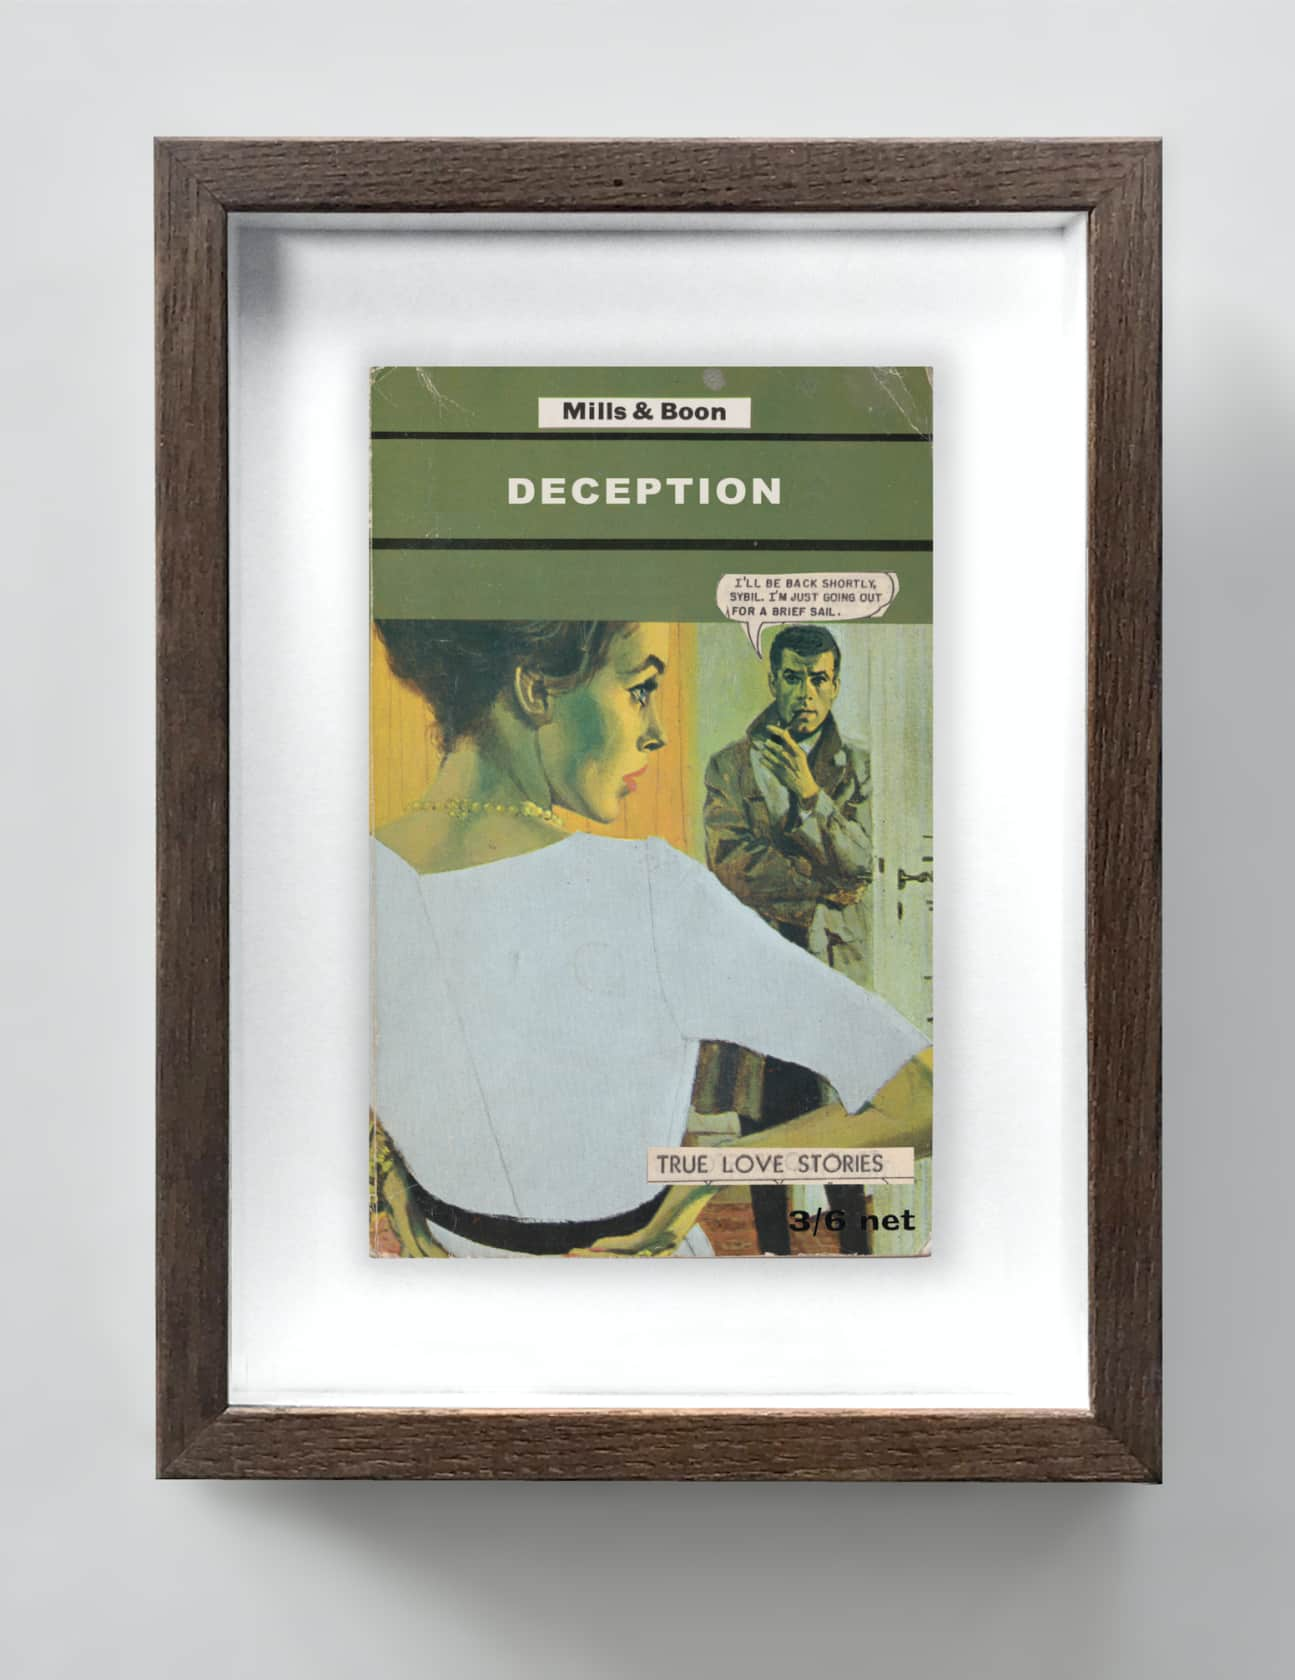 the connor brothers Deception Collage on vintage paperback book